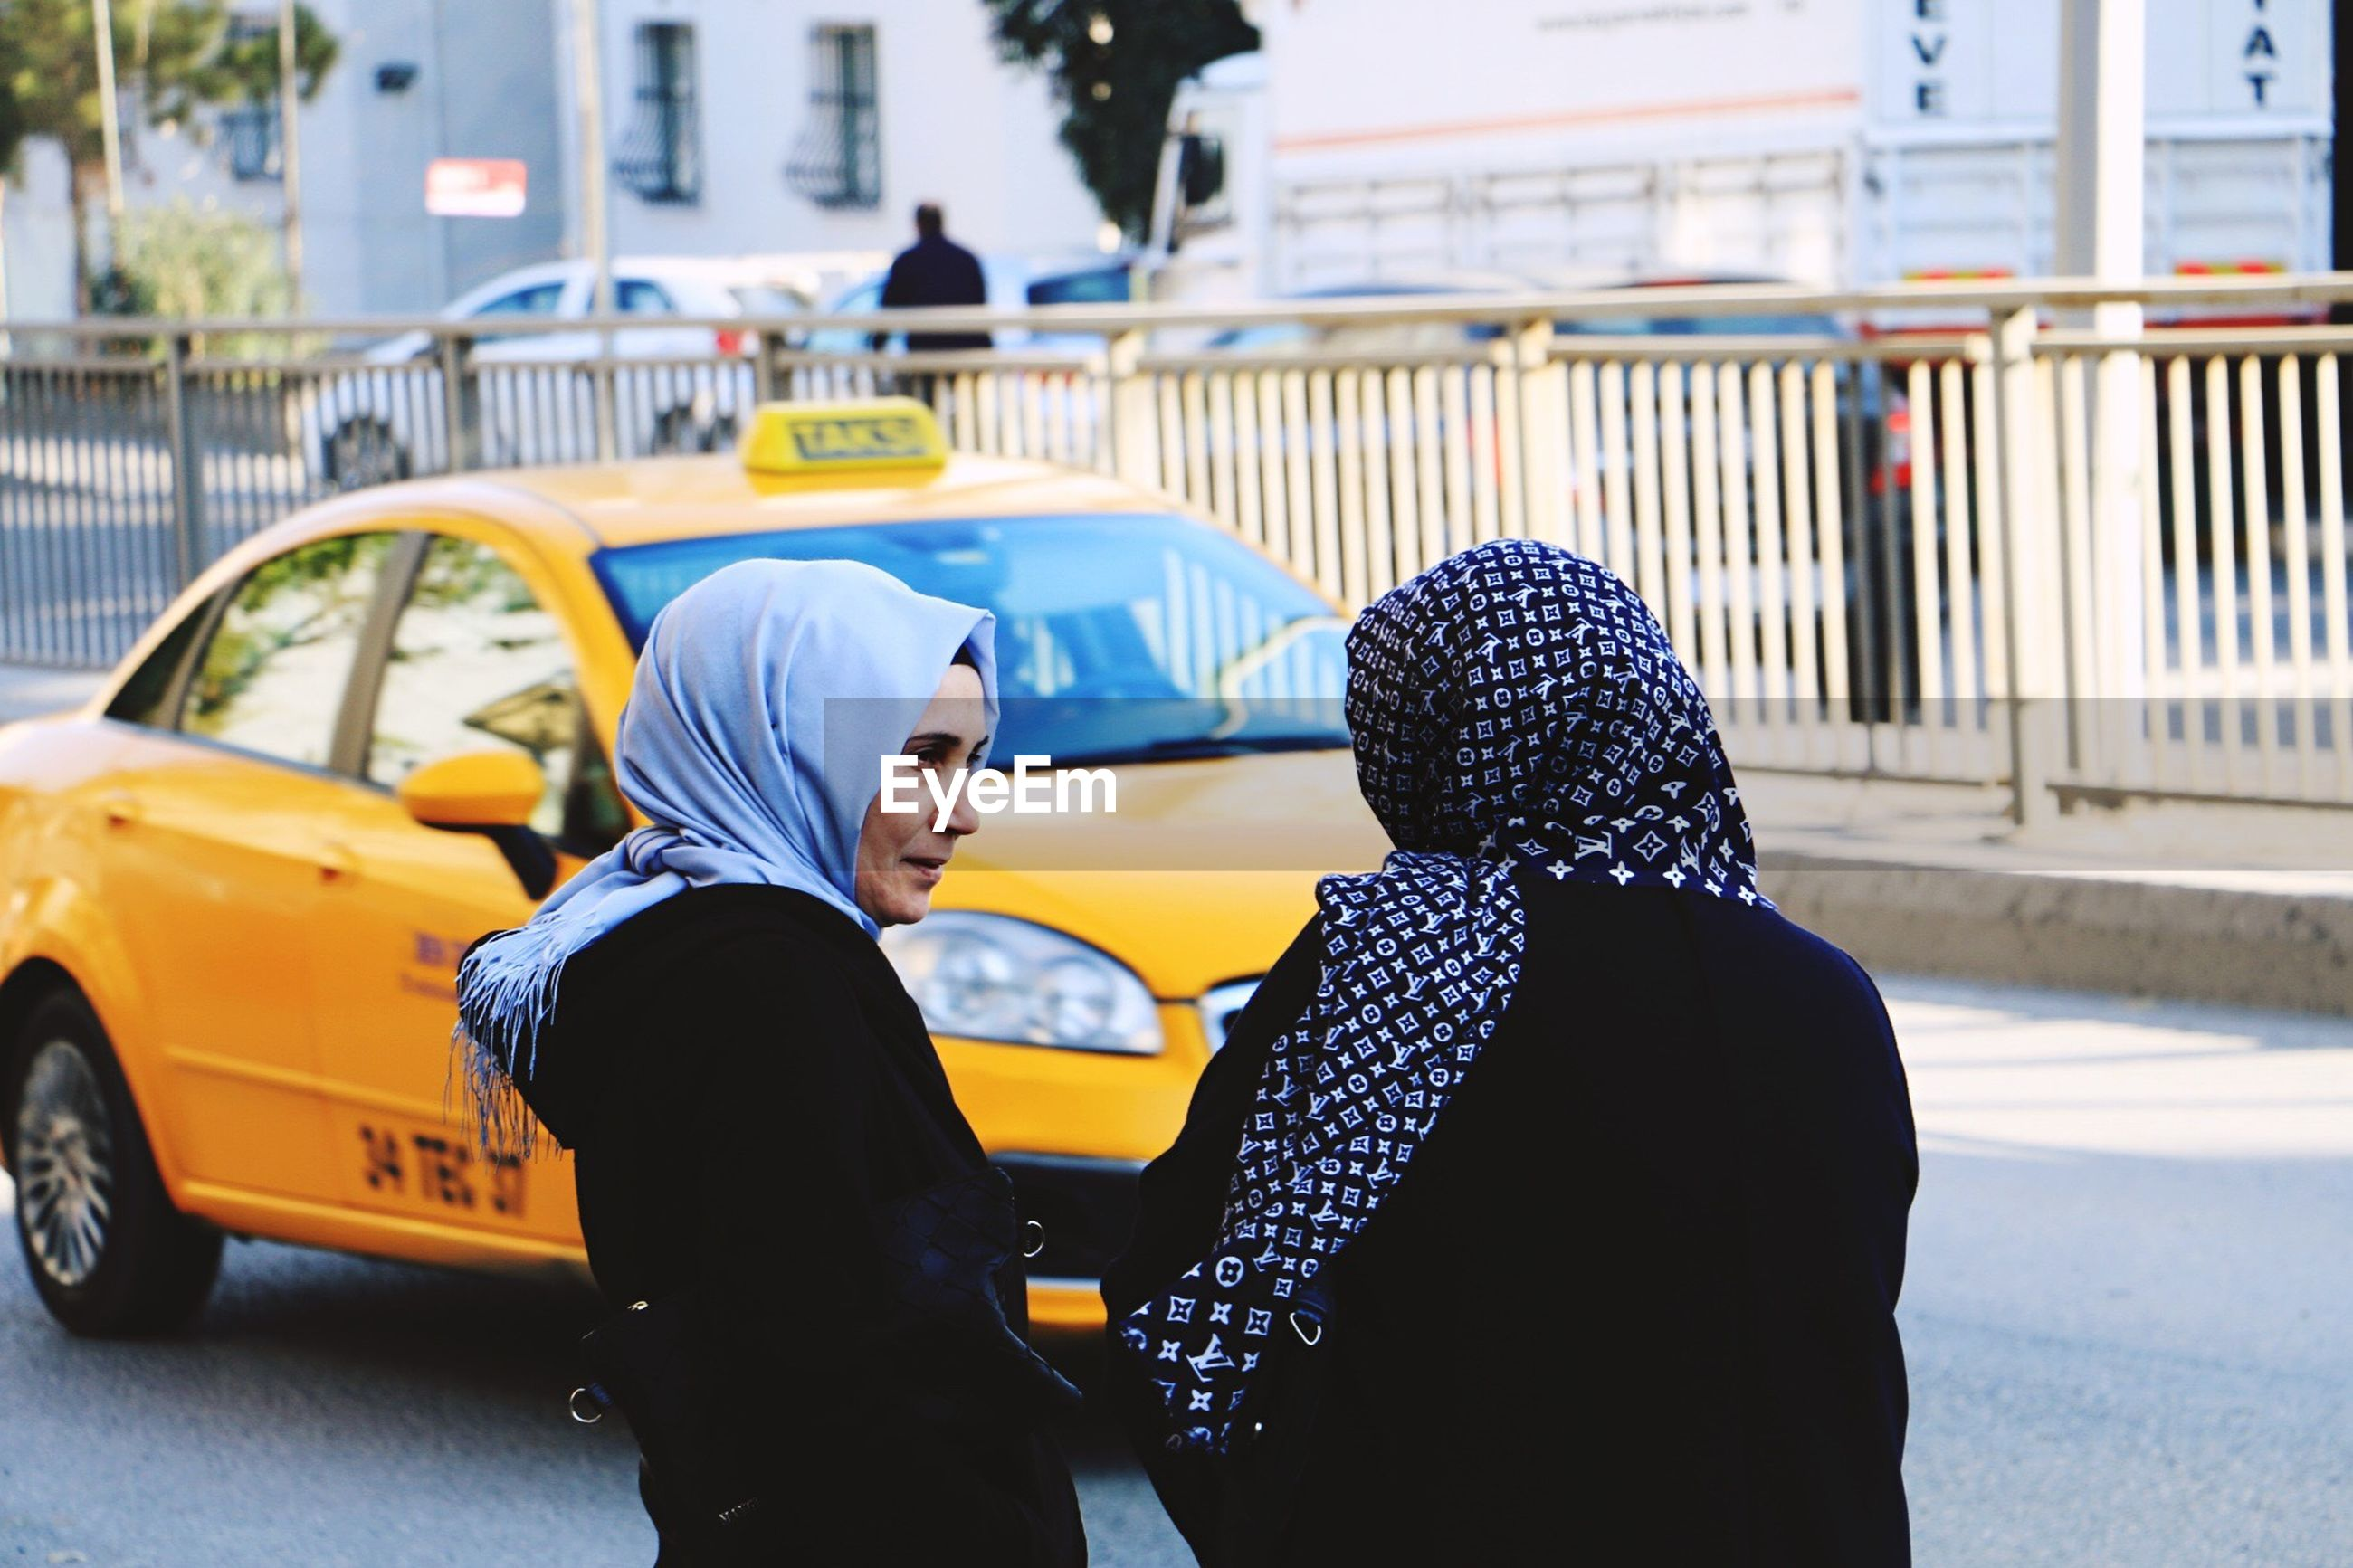 two people, car, street, taxi, couple - relationship, heterosexual couple, love, togetherness, city, males, young women, young adult, yellow taxi, adults only, city street, romance, women, females, men, city life, lifestyles, adult, people, outdoors, happiness, friendship, couple, real people, day